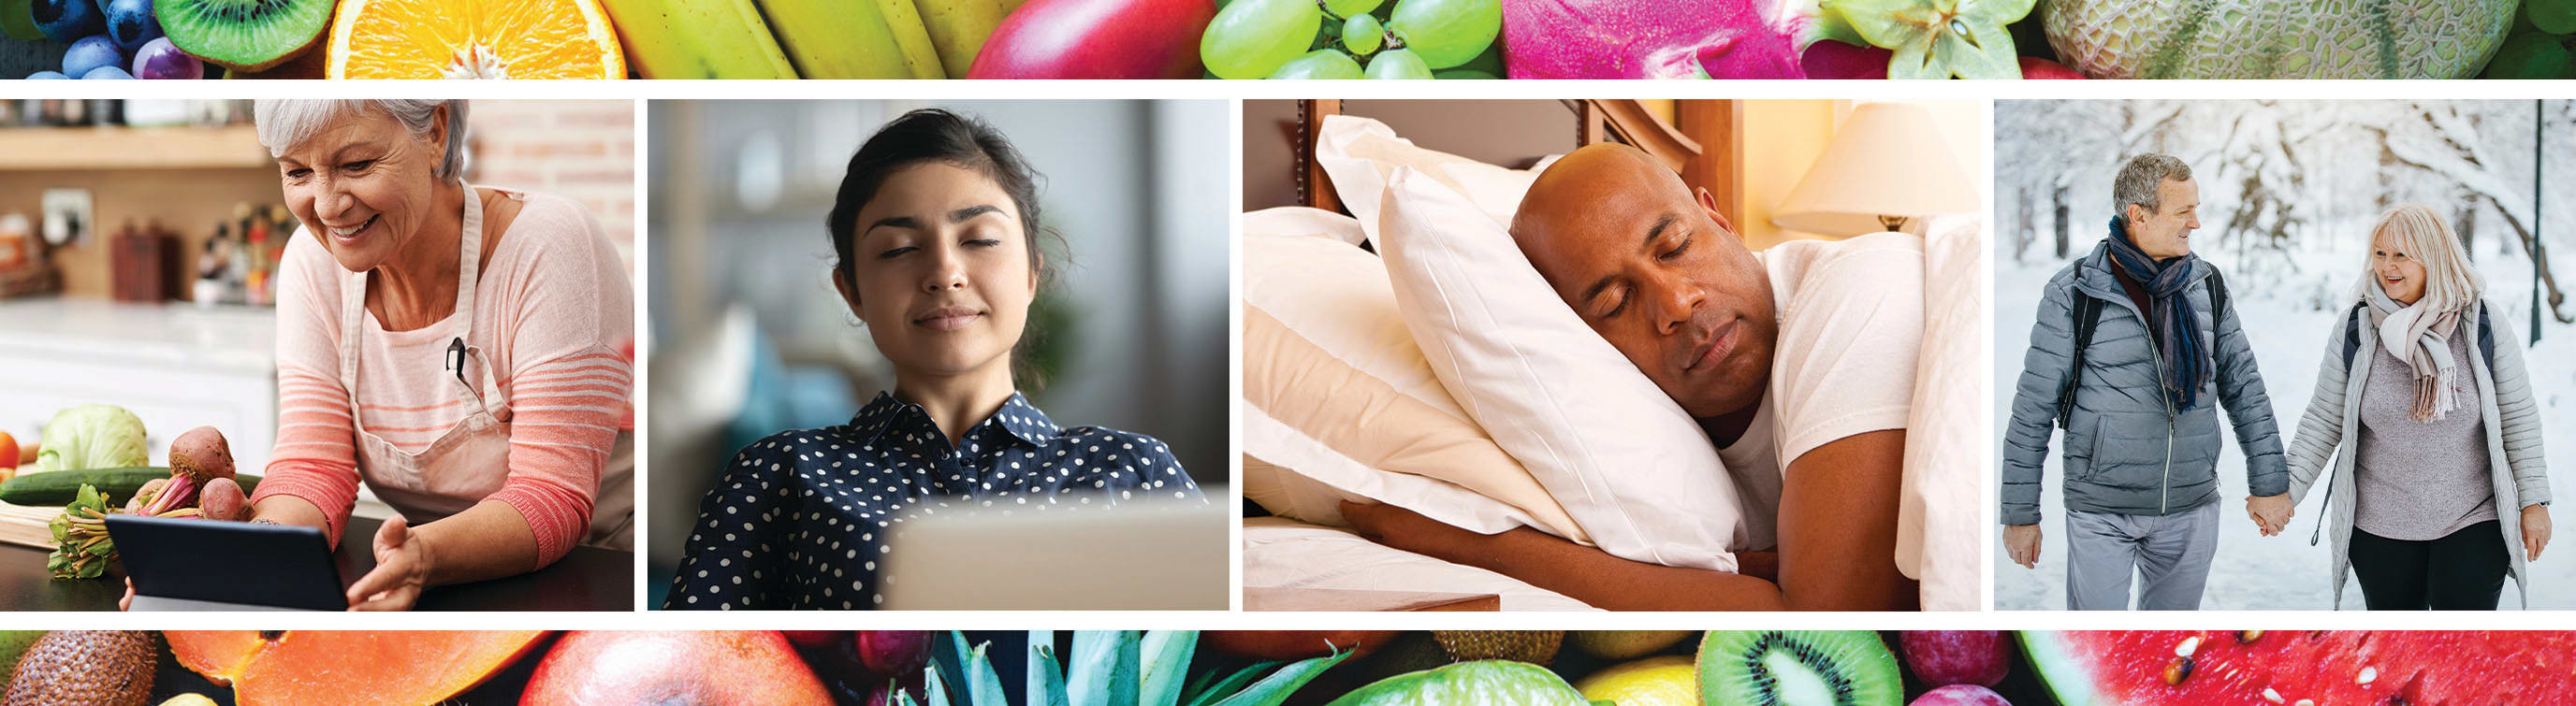 Healthy eating, relaxation, sleep and exercise are key in lifestyle medicine.